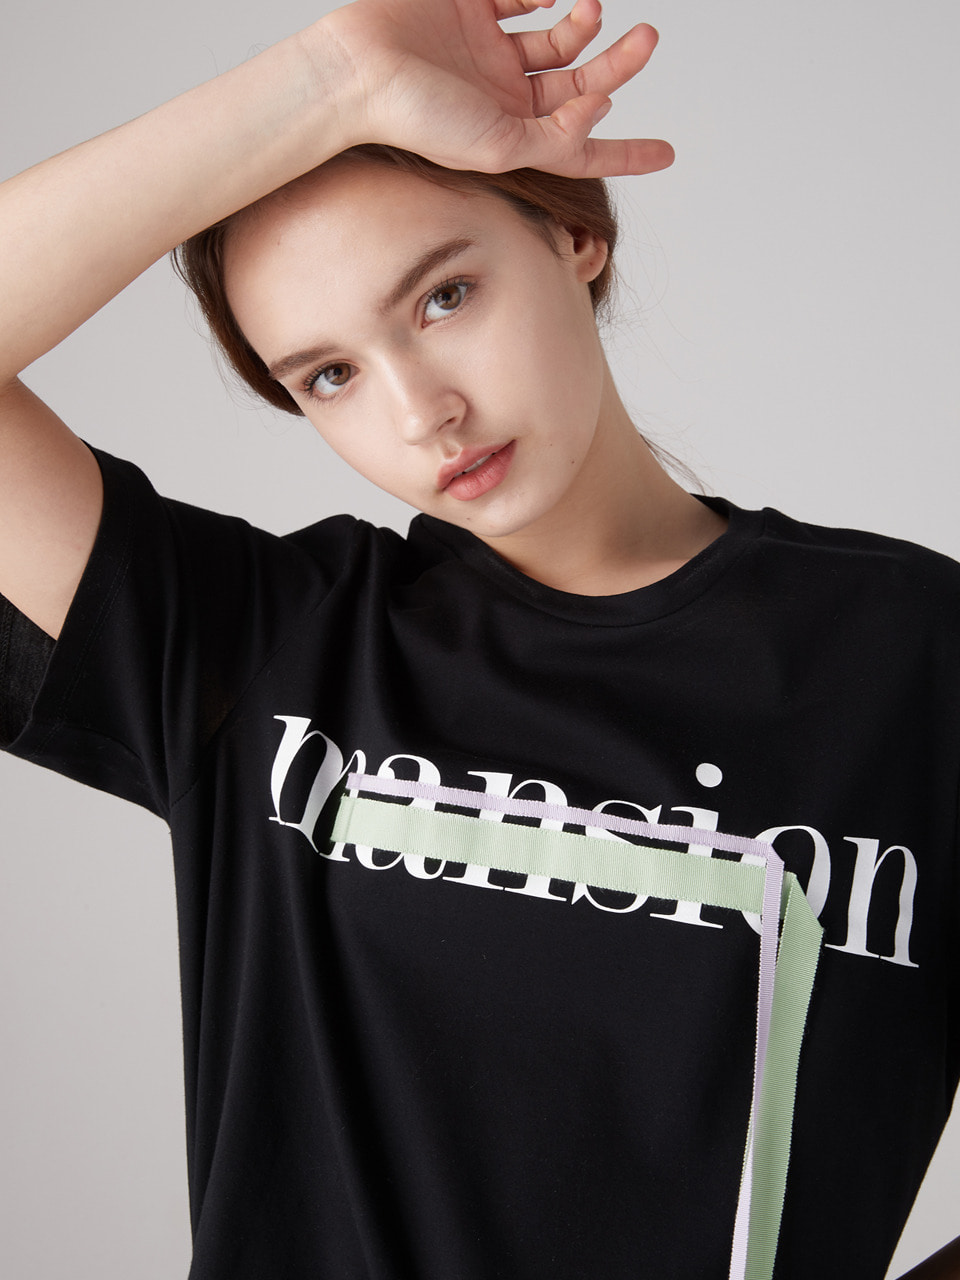 Nu mansion tee - Black